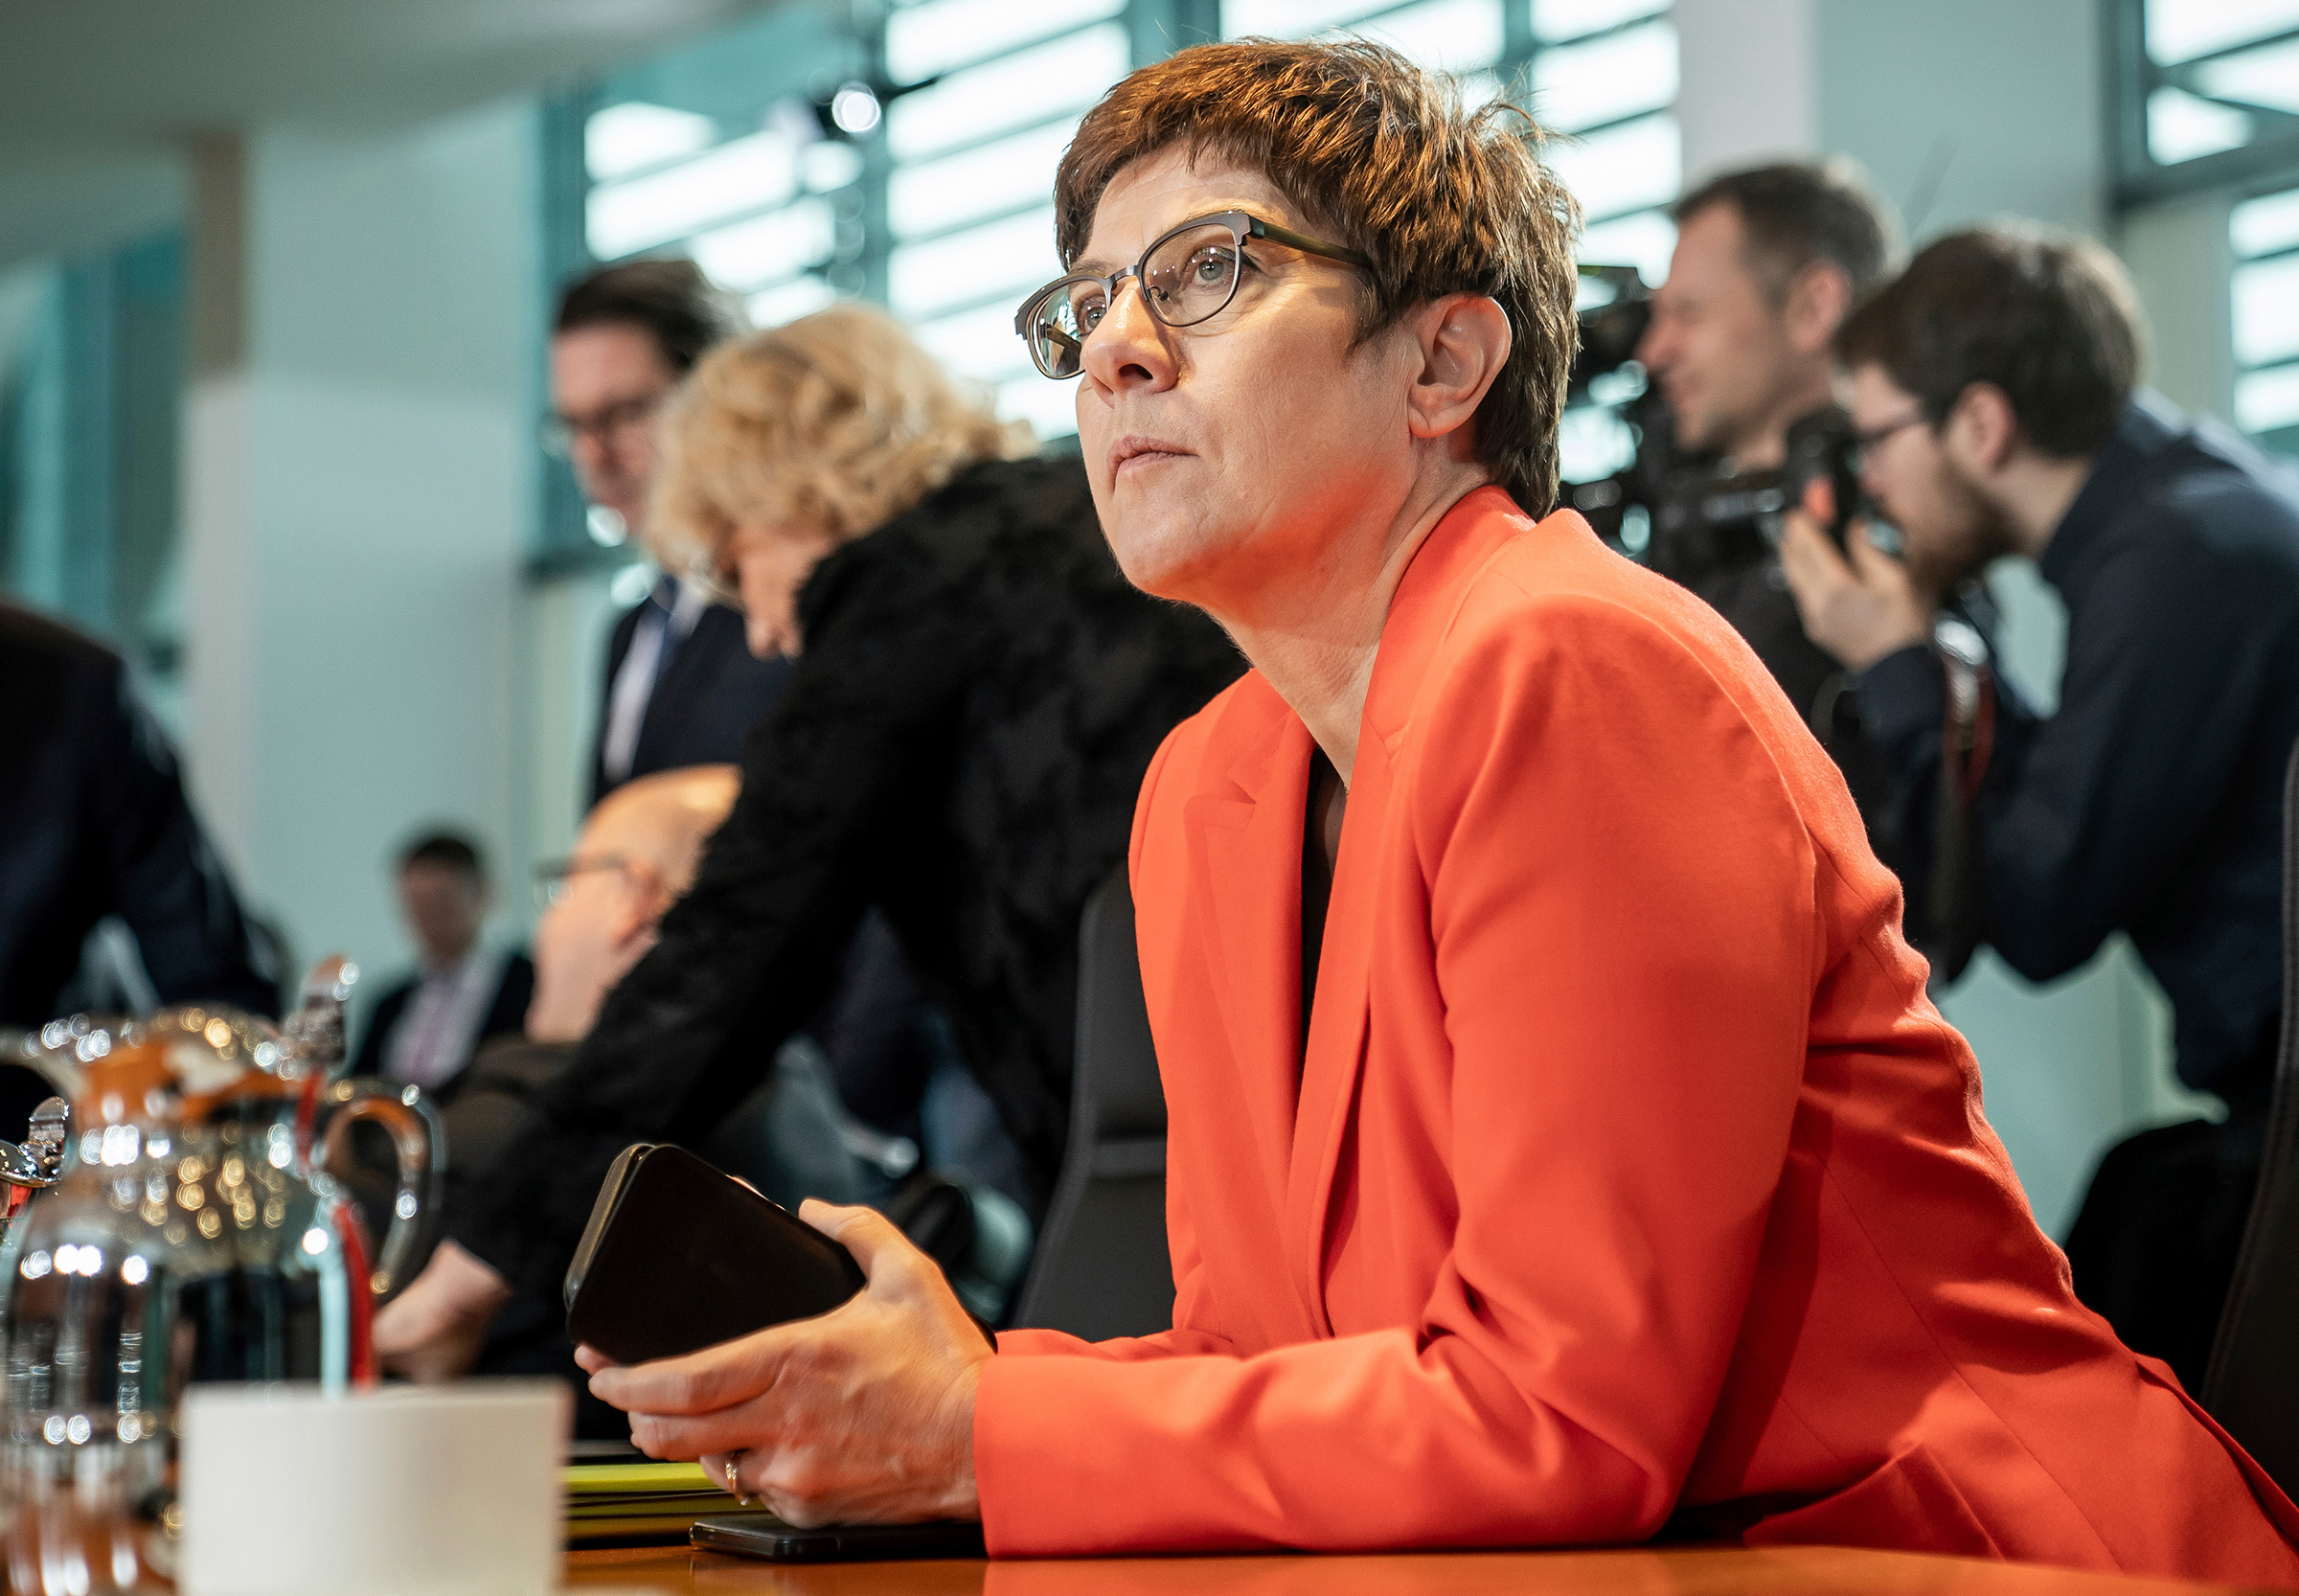 Feb. 19, Berlin: Annegret Kramp-Karrenbauer (CDU), Federal Minister of Defence, is waiting for the start of the weekly cabinet meeting in the Chancellery. Among other things, the federal government wants to pass the bill for a basic pension for low earners.